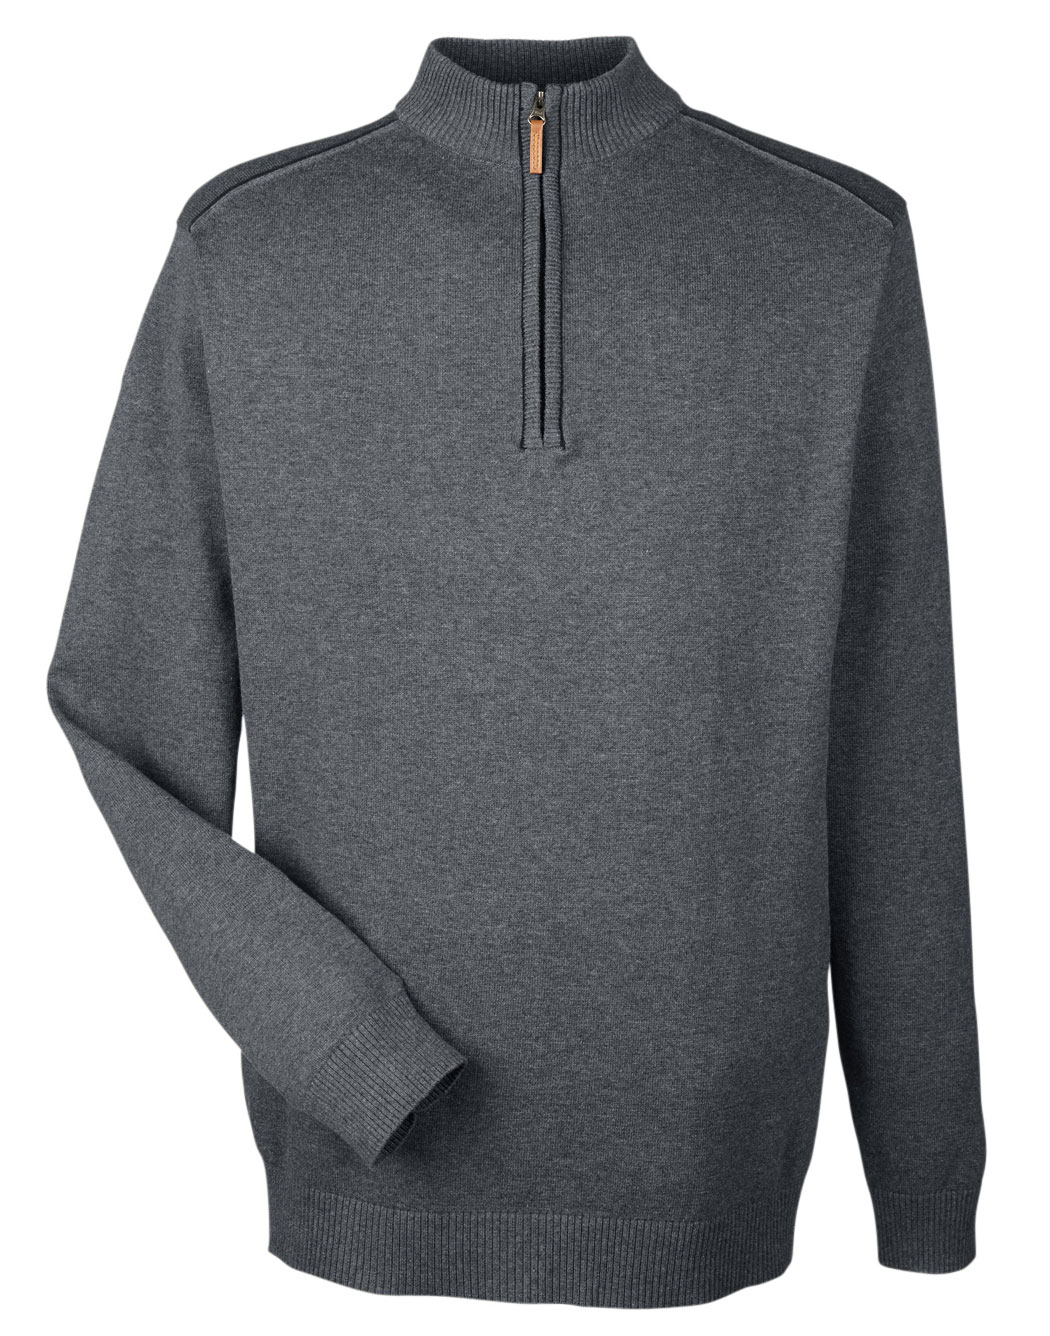 Mens Manchester Fully-Fashioned 1/4-Zip Sweater